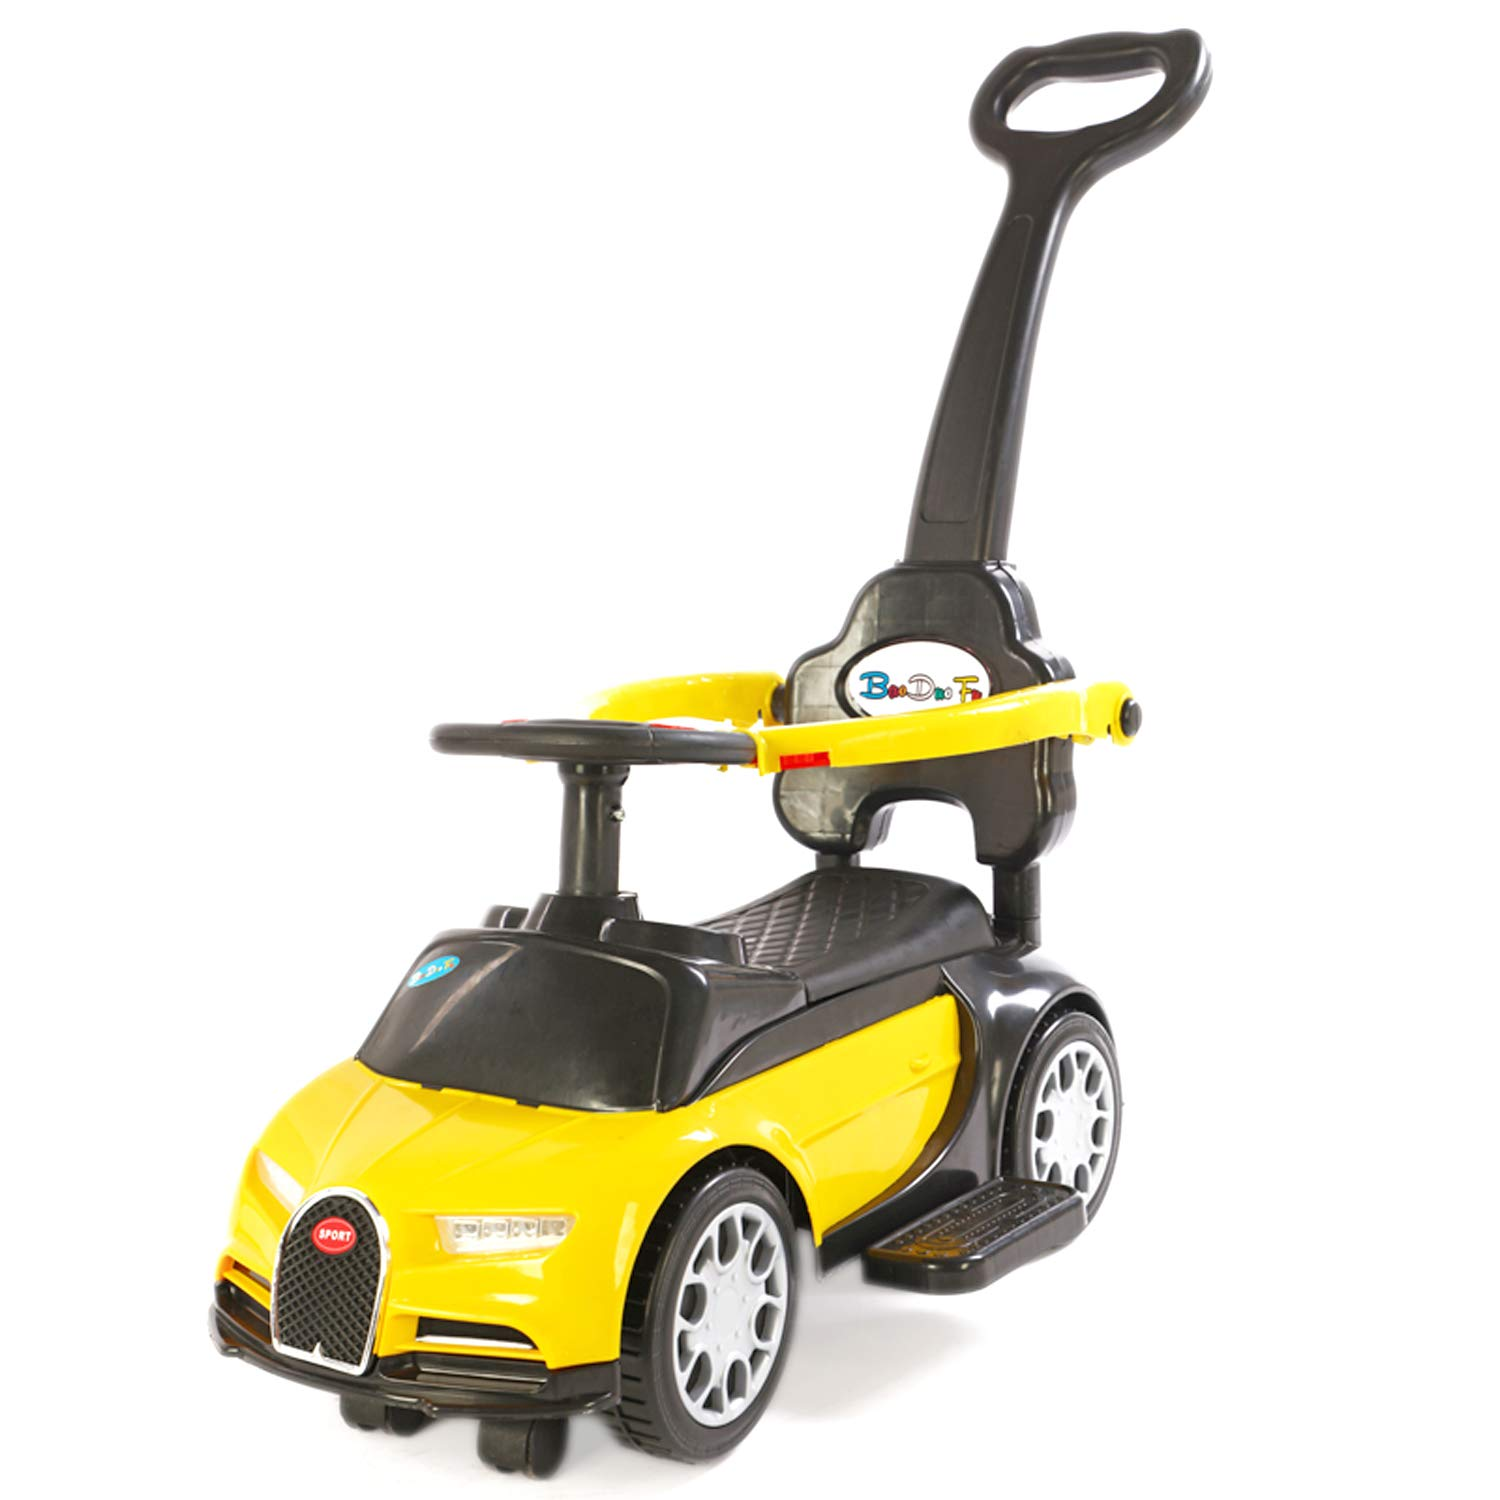 Toyhouse Foot to Floor Bugatti Push Car with Removable Push Handle for Kids (1 to 3yrs), Yellow